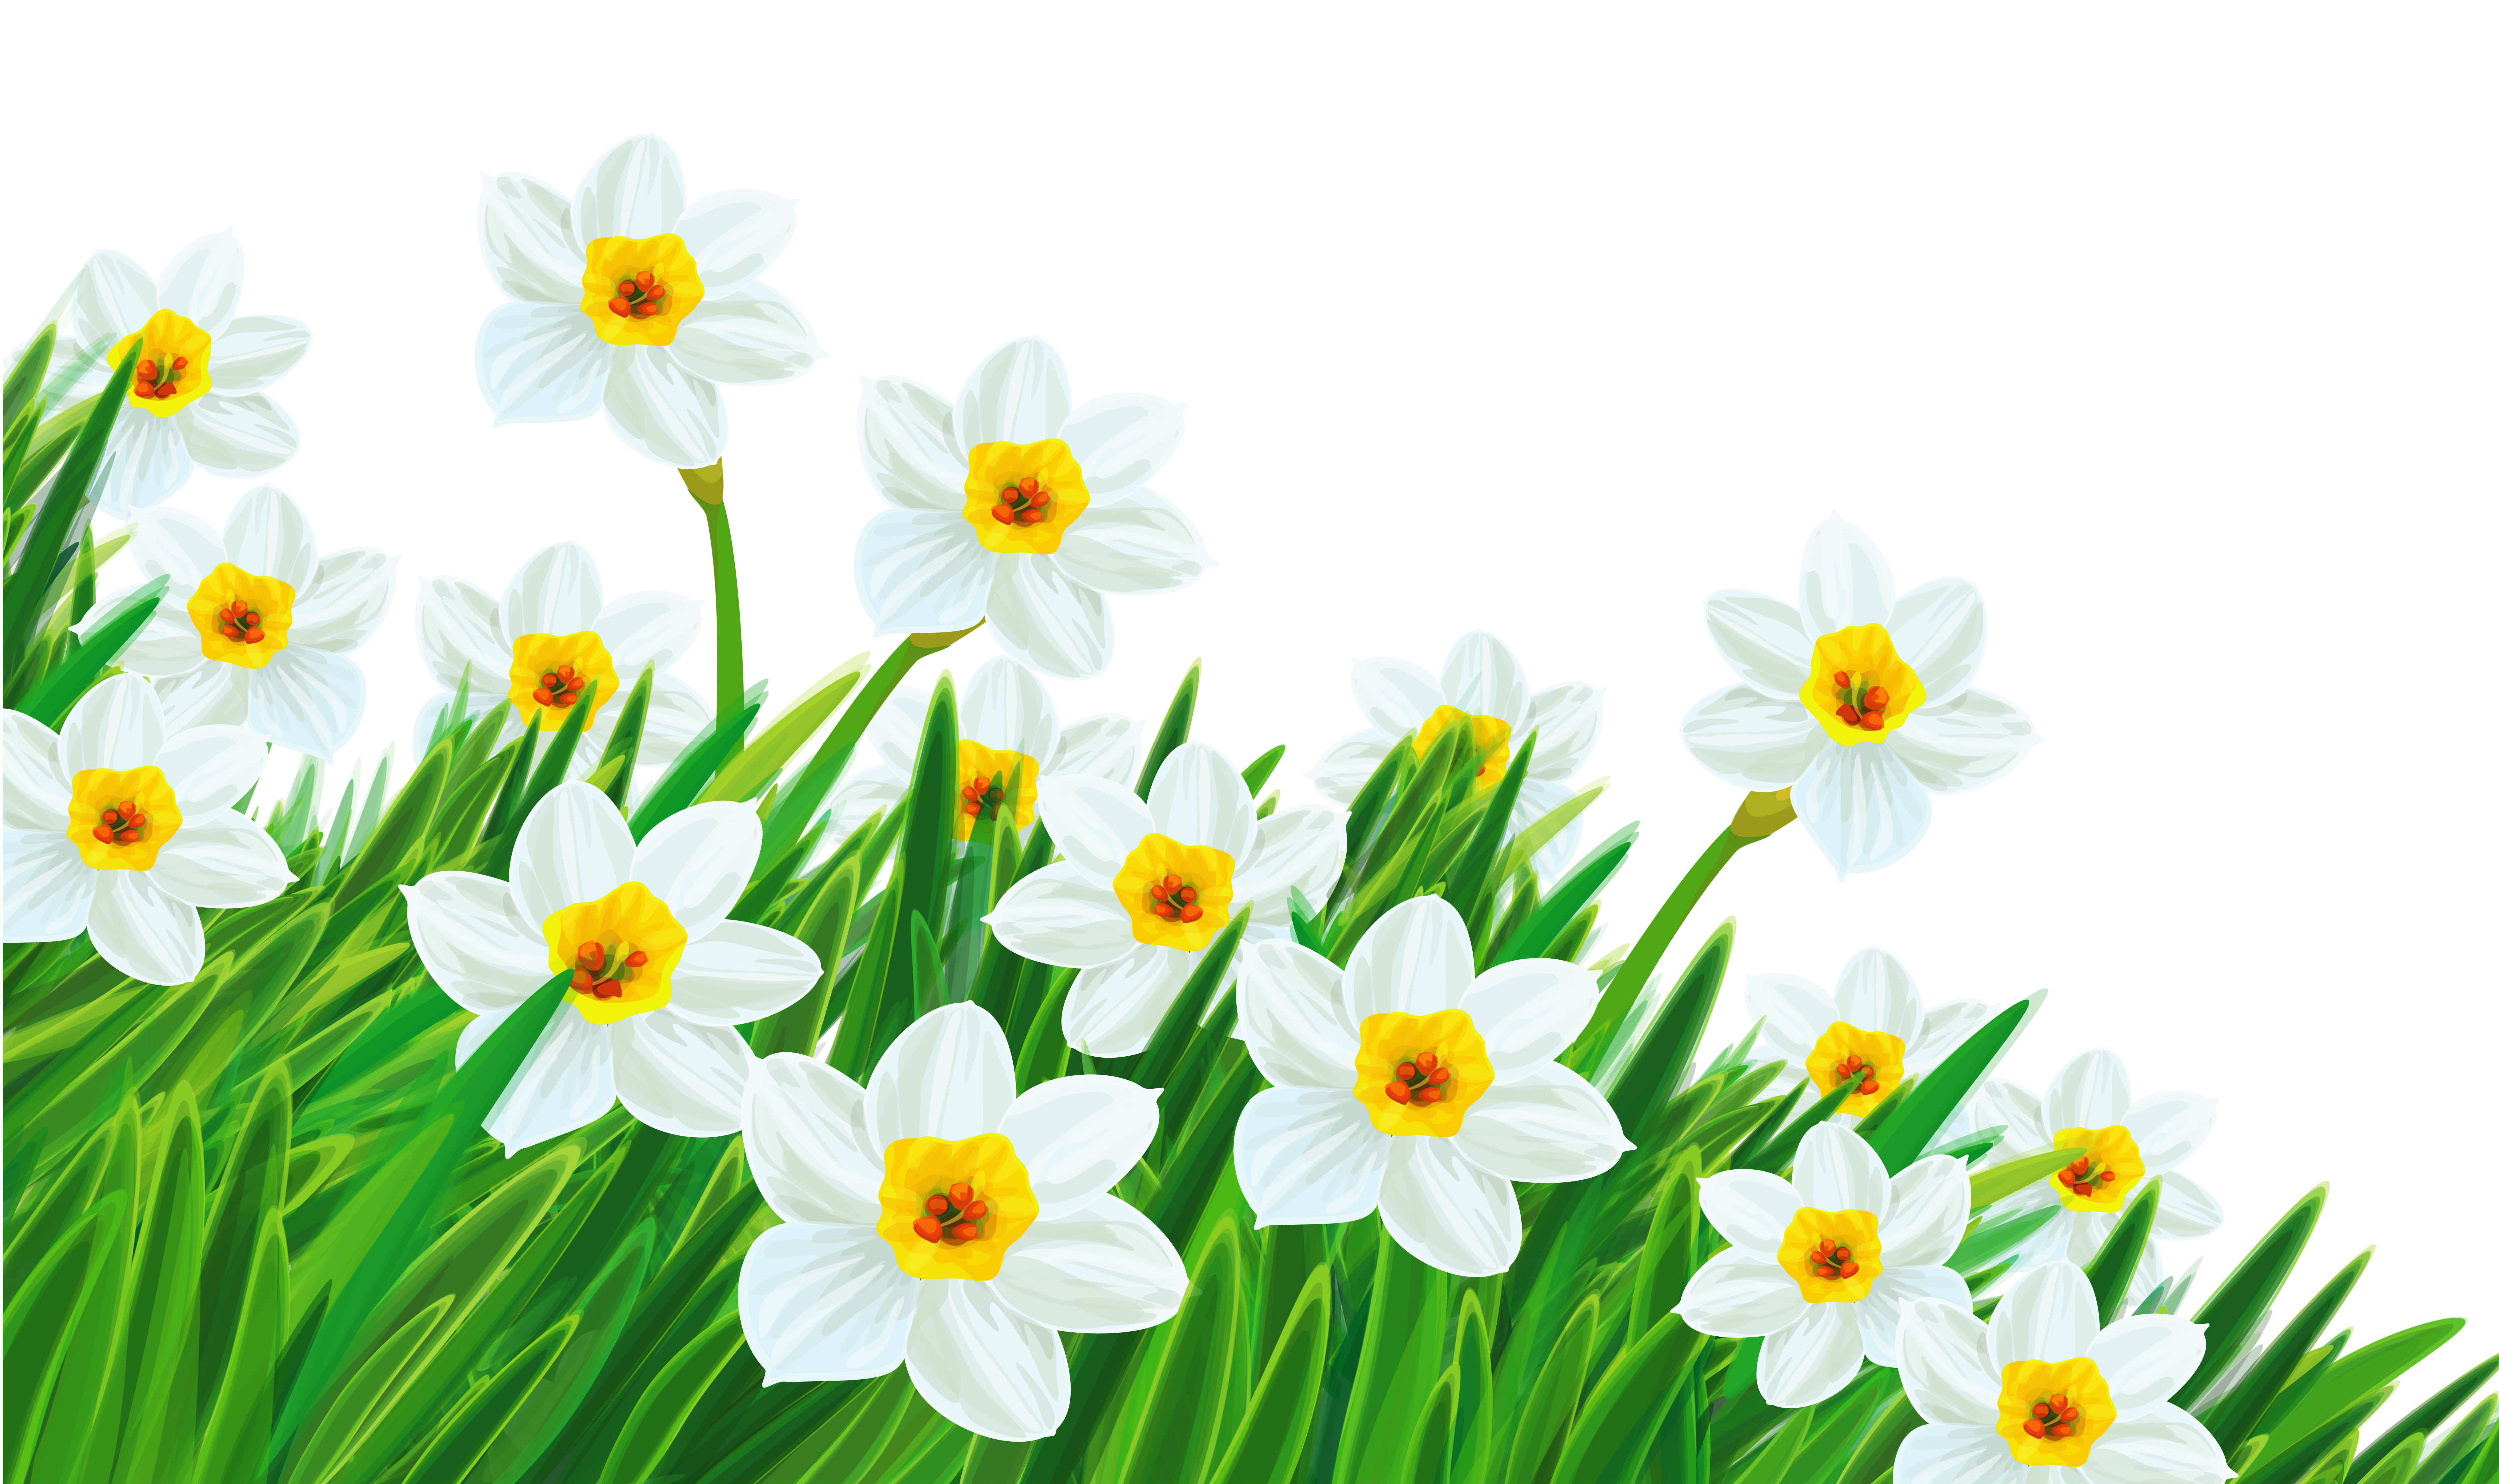 Free flower clipart with transparent background picture transparent download Png clipart transparent background - ClipartFest picture transparent download